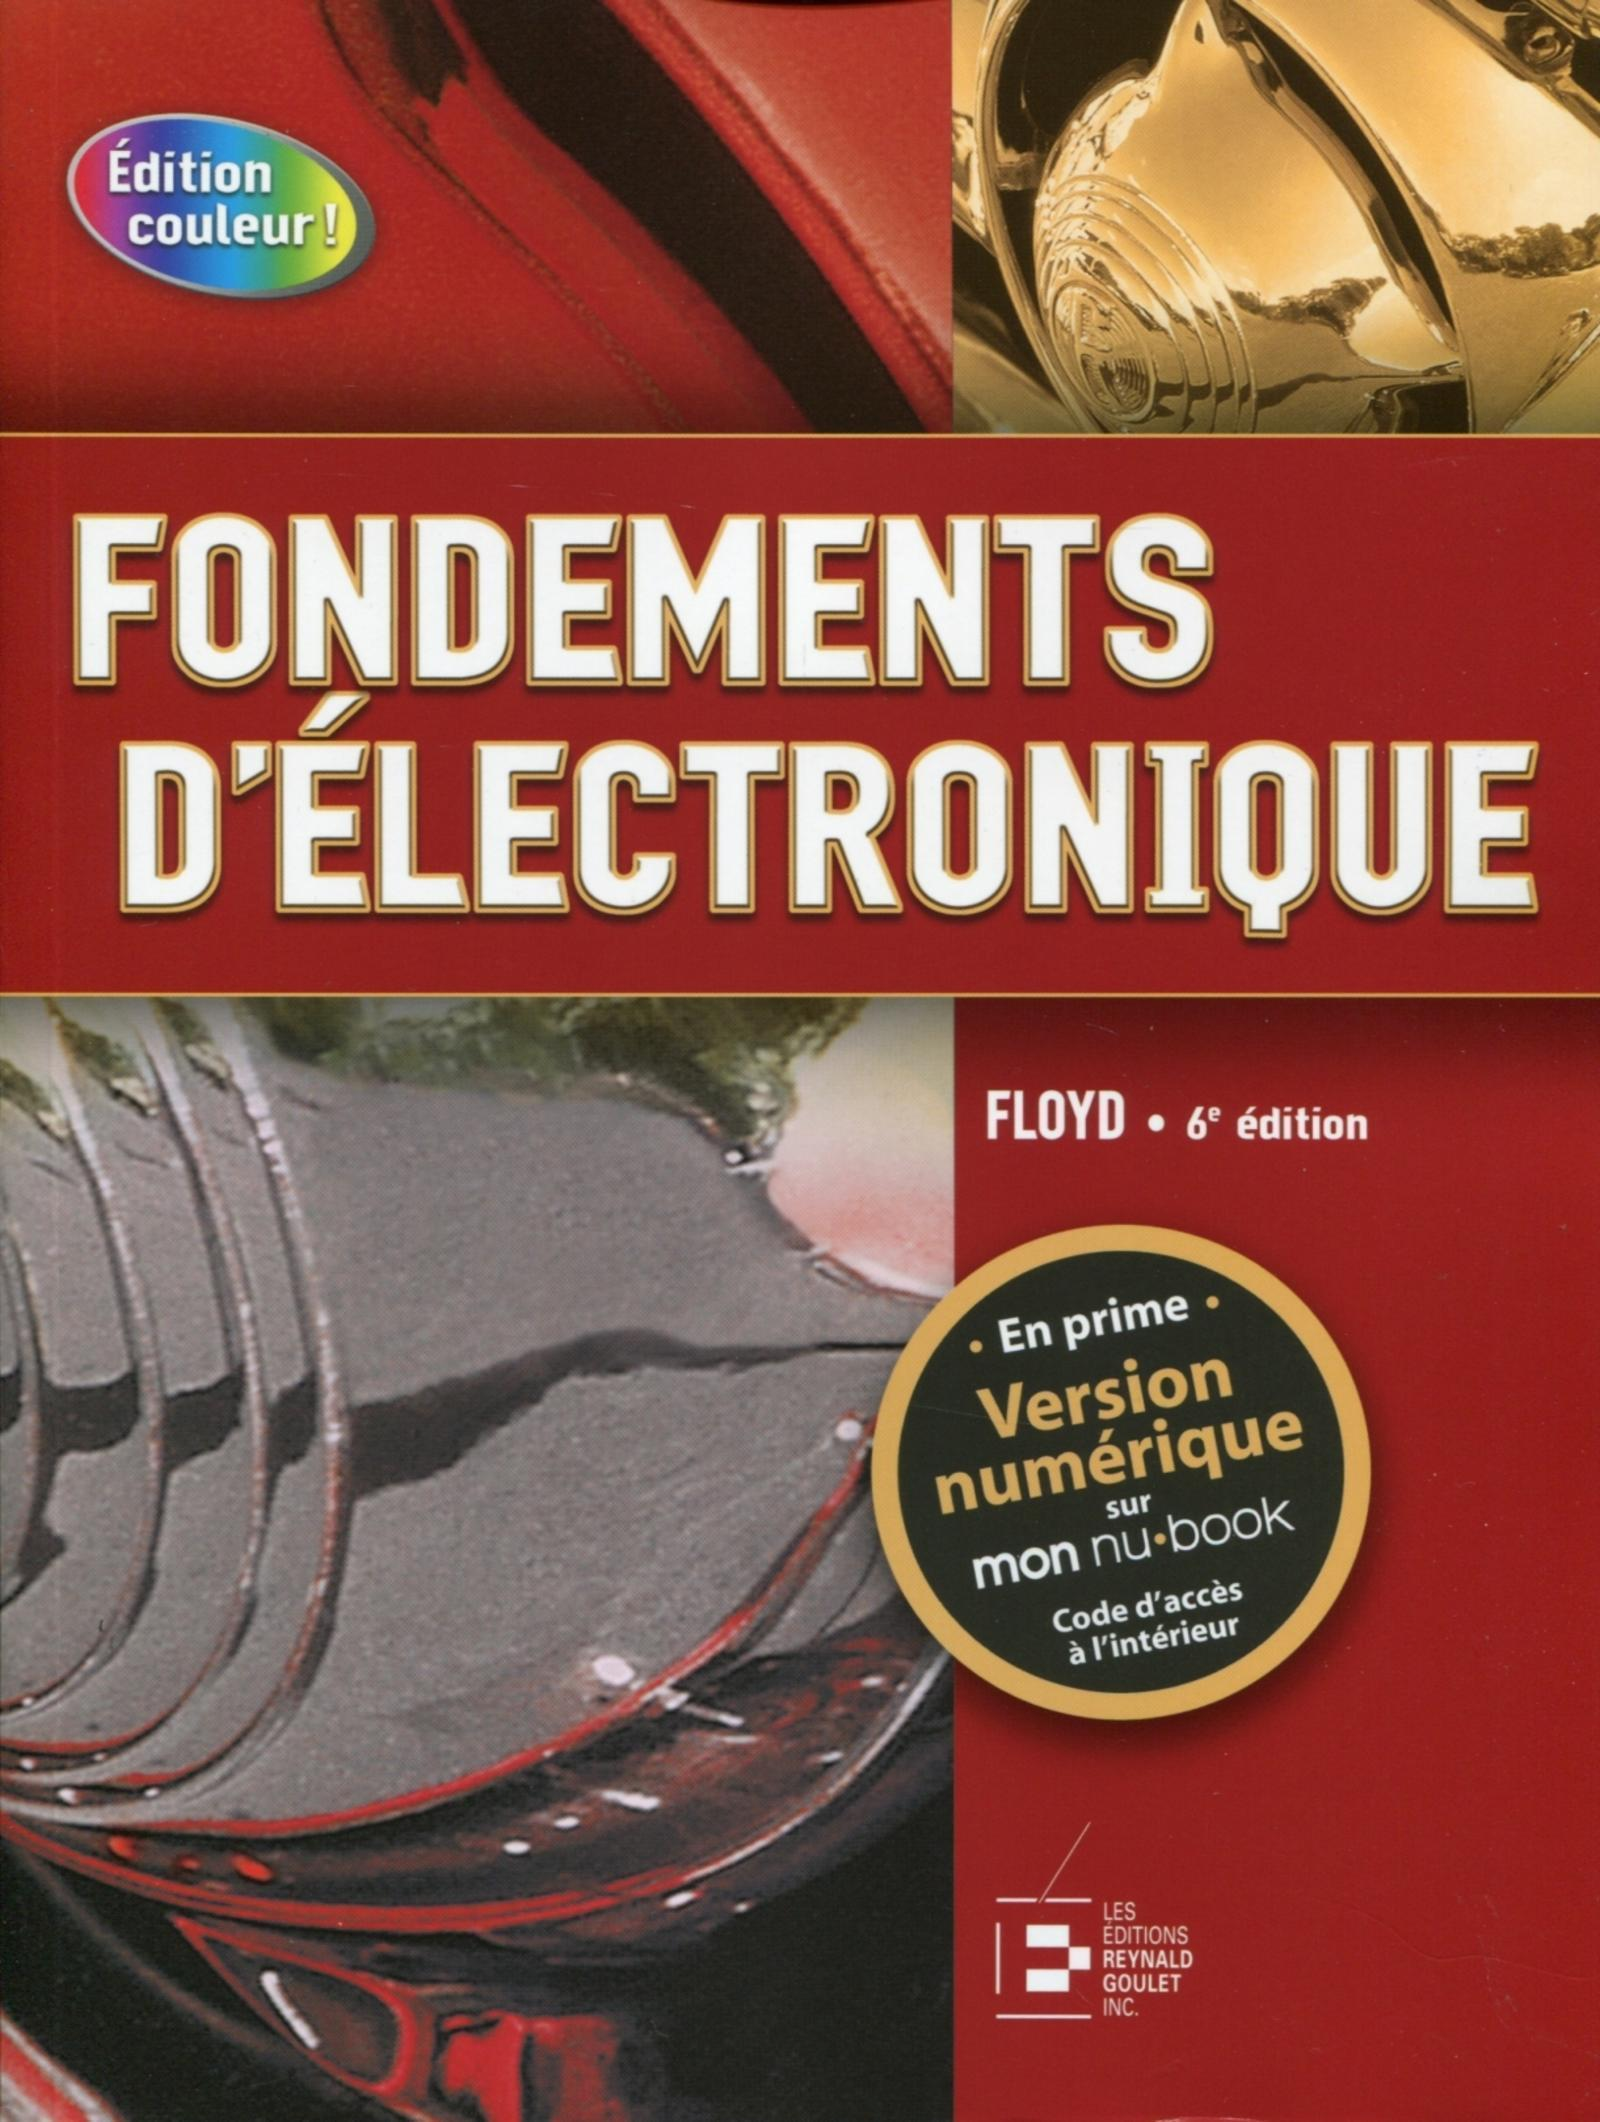 FONDEMENTS D'ELECTRONIQUE. CIRCUITS C.C., CIRCUITS C.A., COMPOSANTS ET APPLICATI - CICUITS C.C., CIR